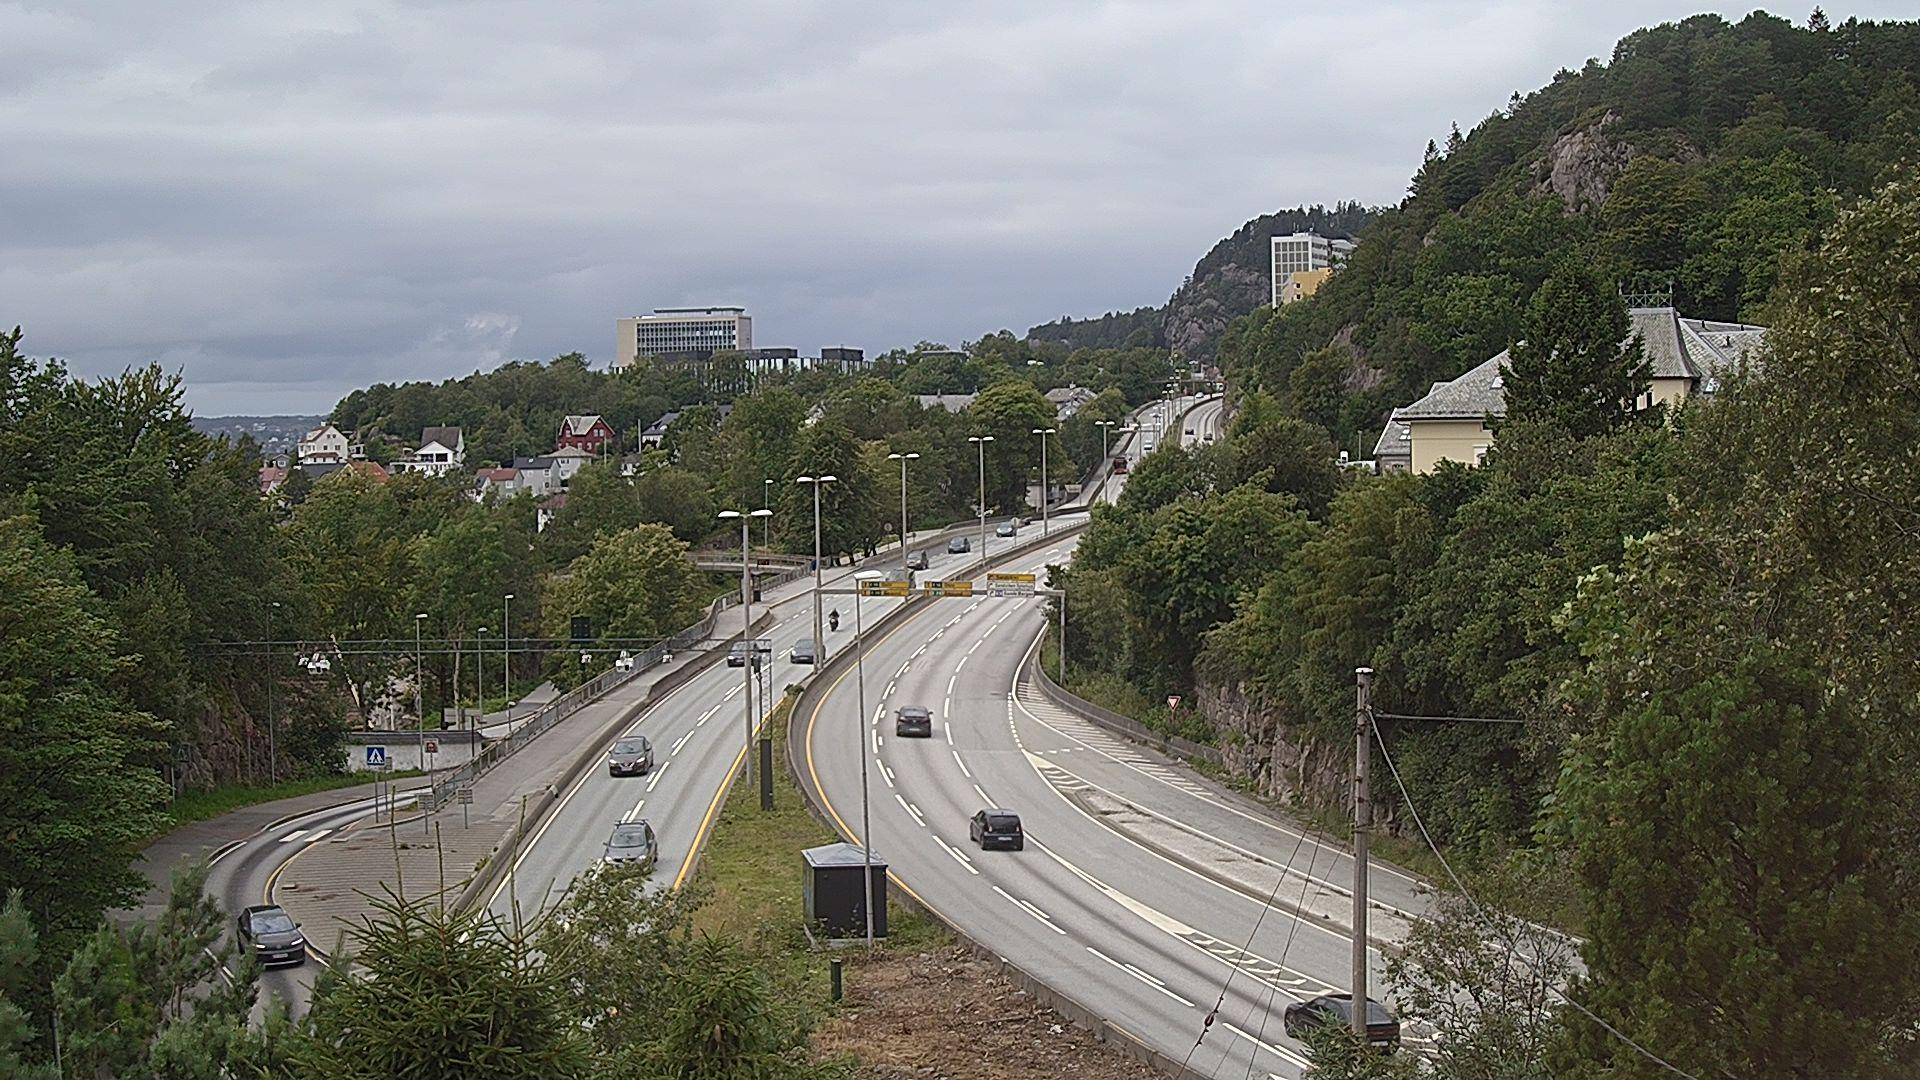 Webcam Sandviken: Bergen, Åsaneveien